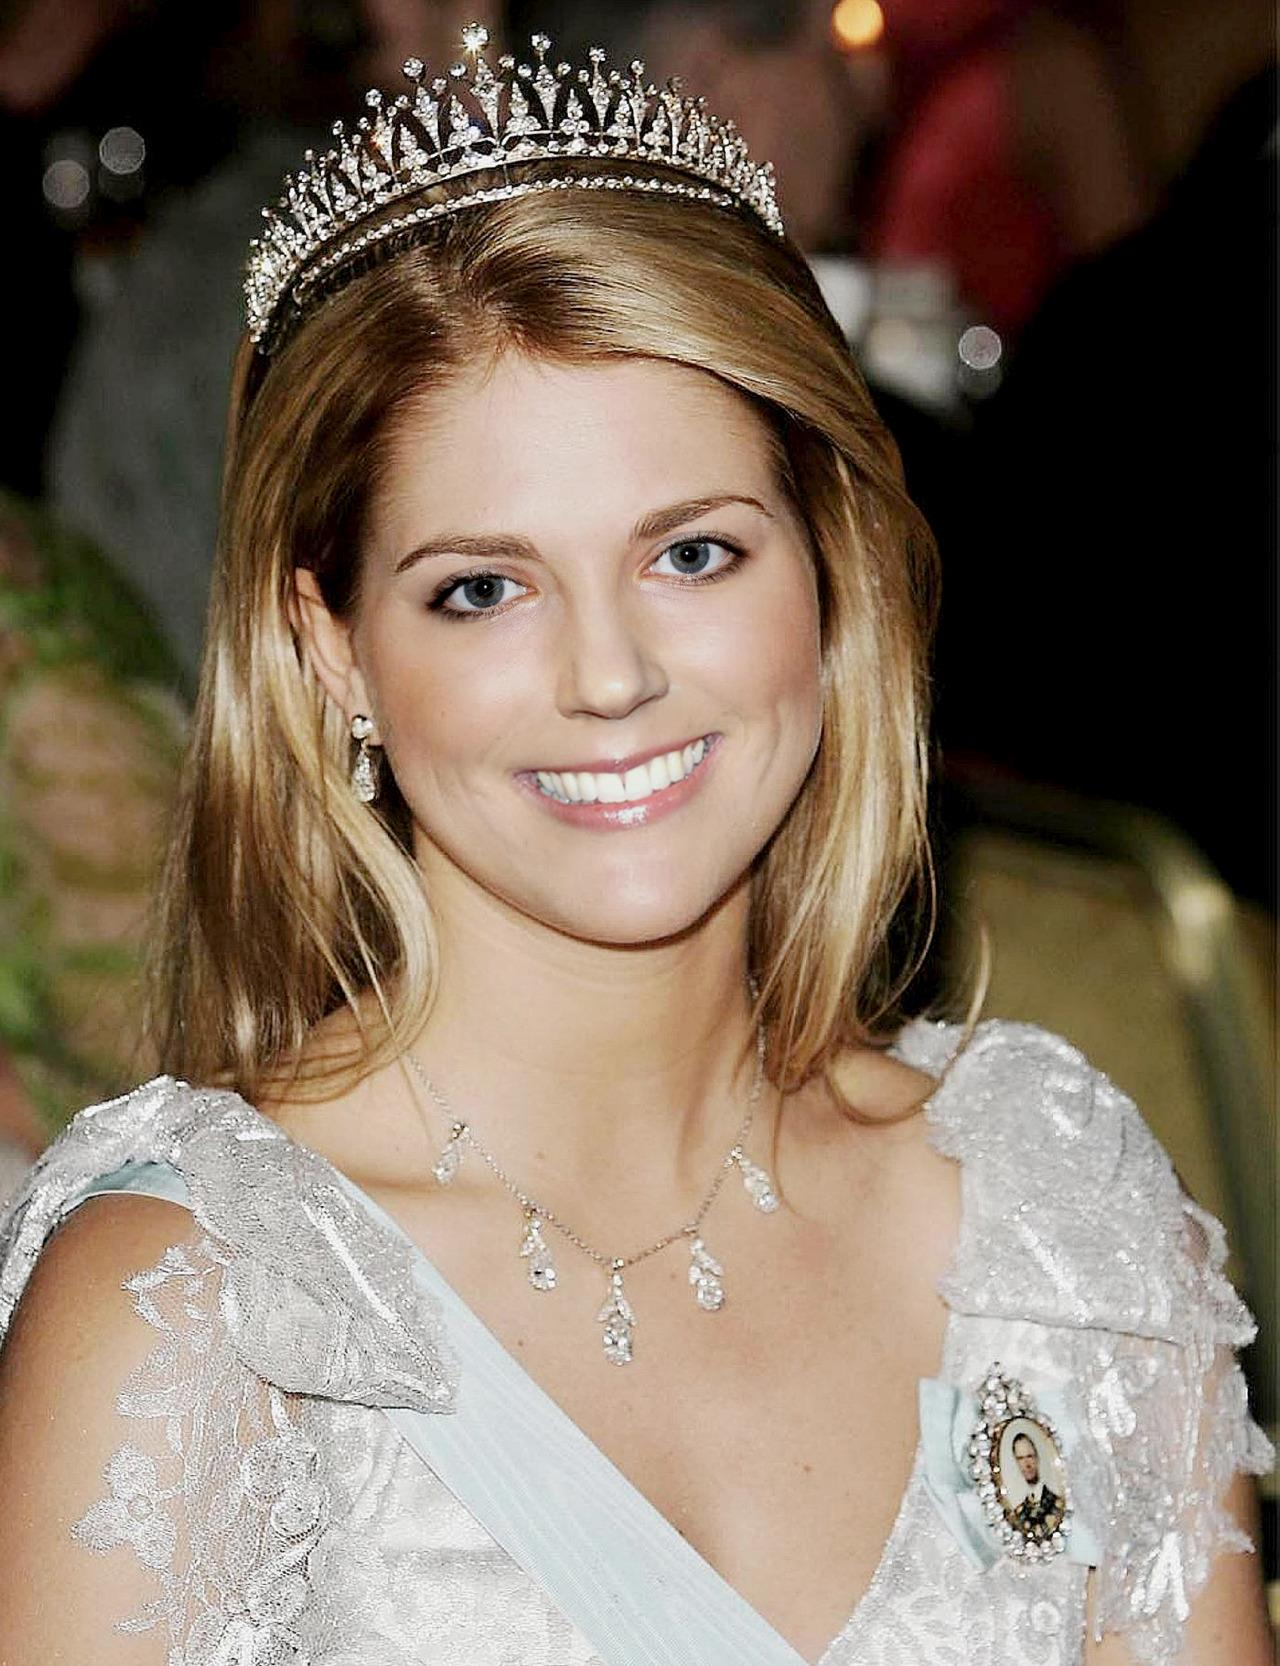 15 Most Beautiful Royals Ever